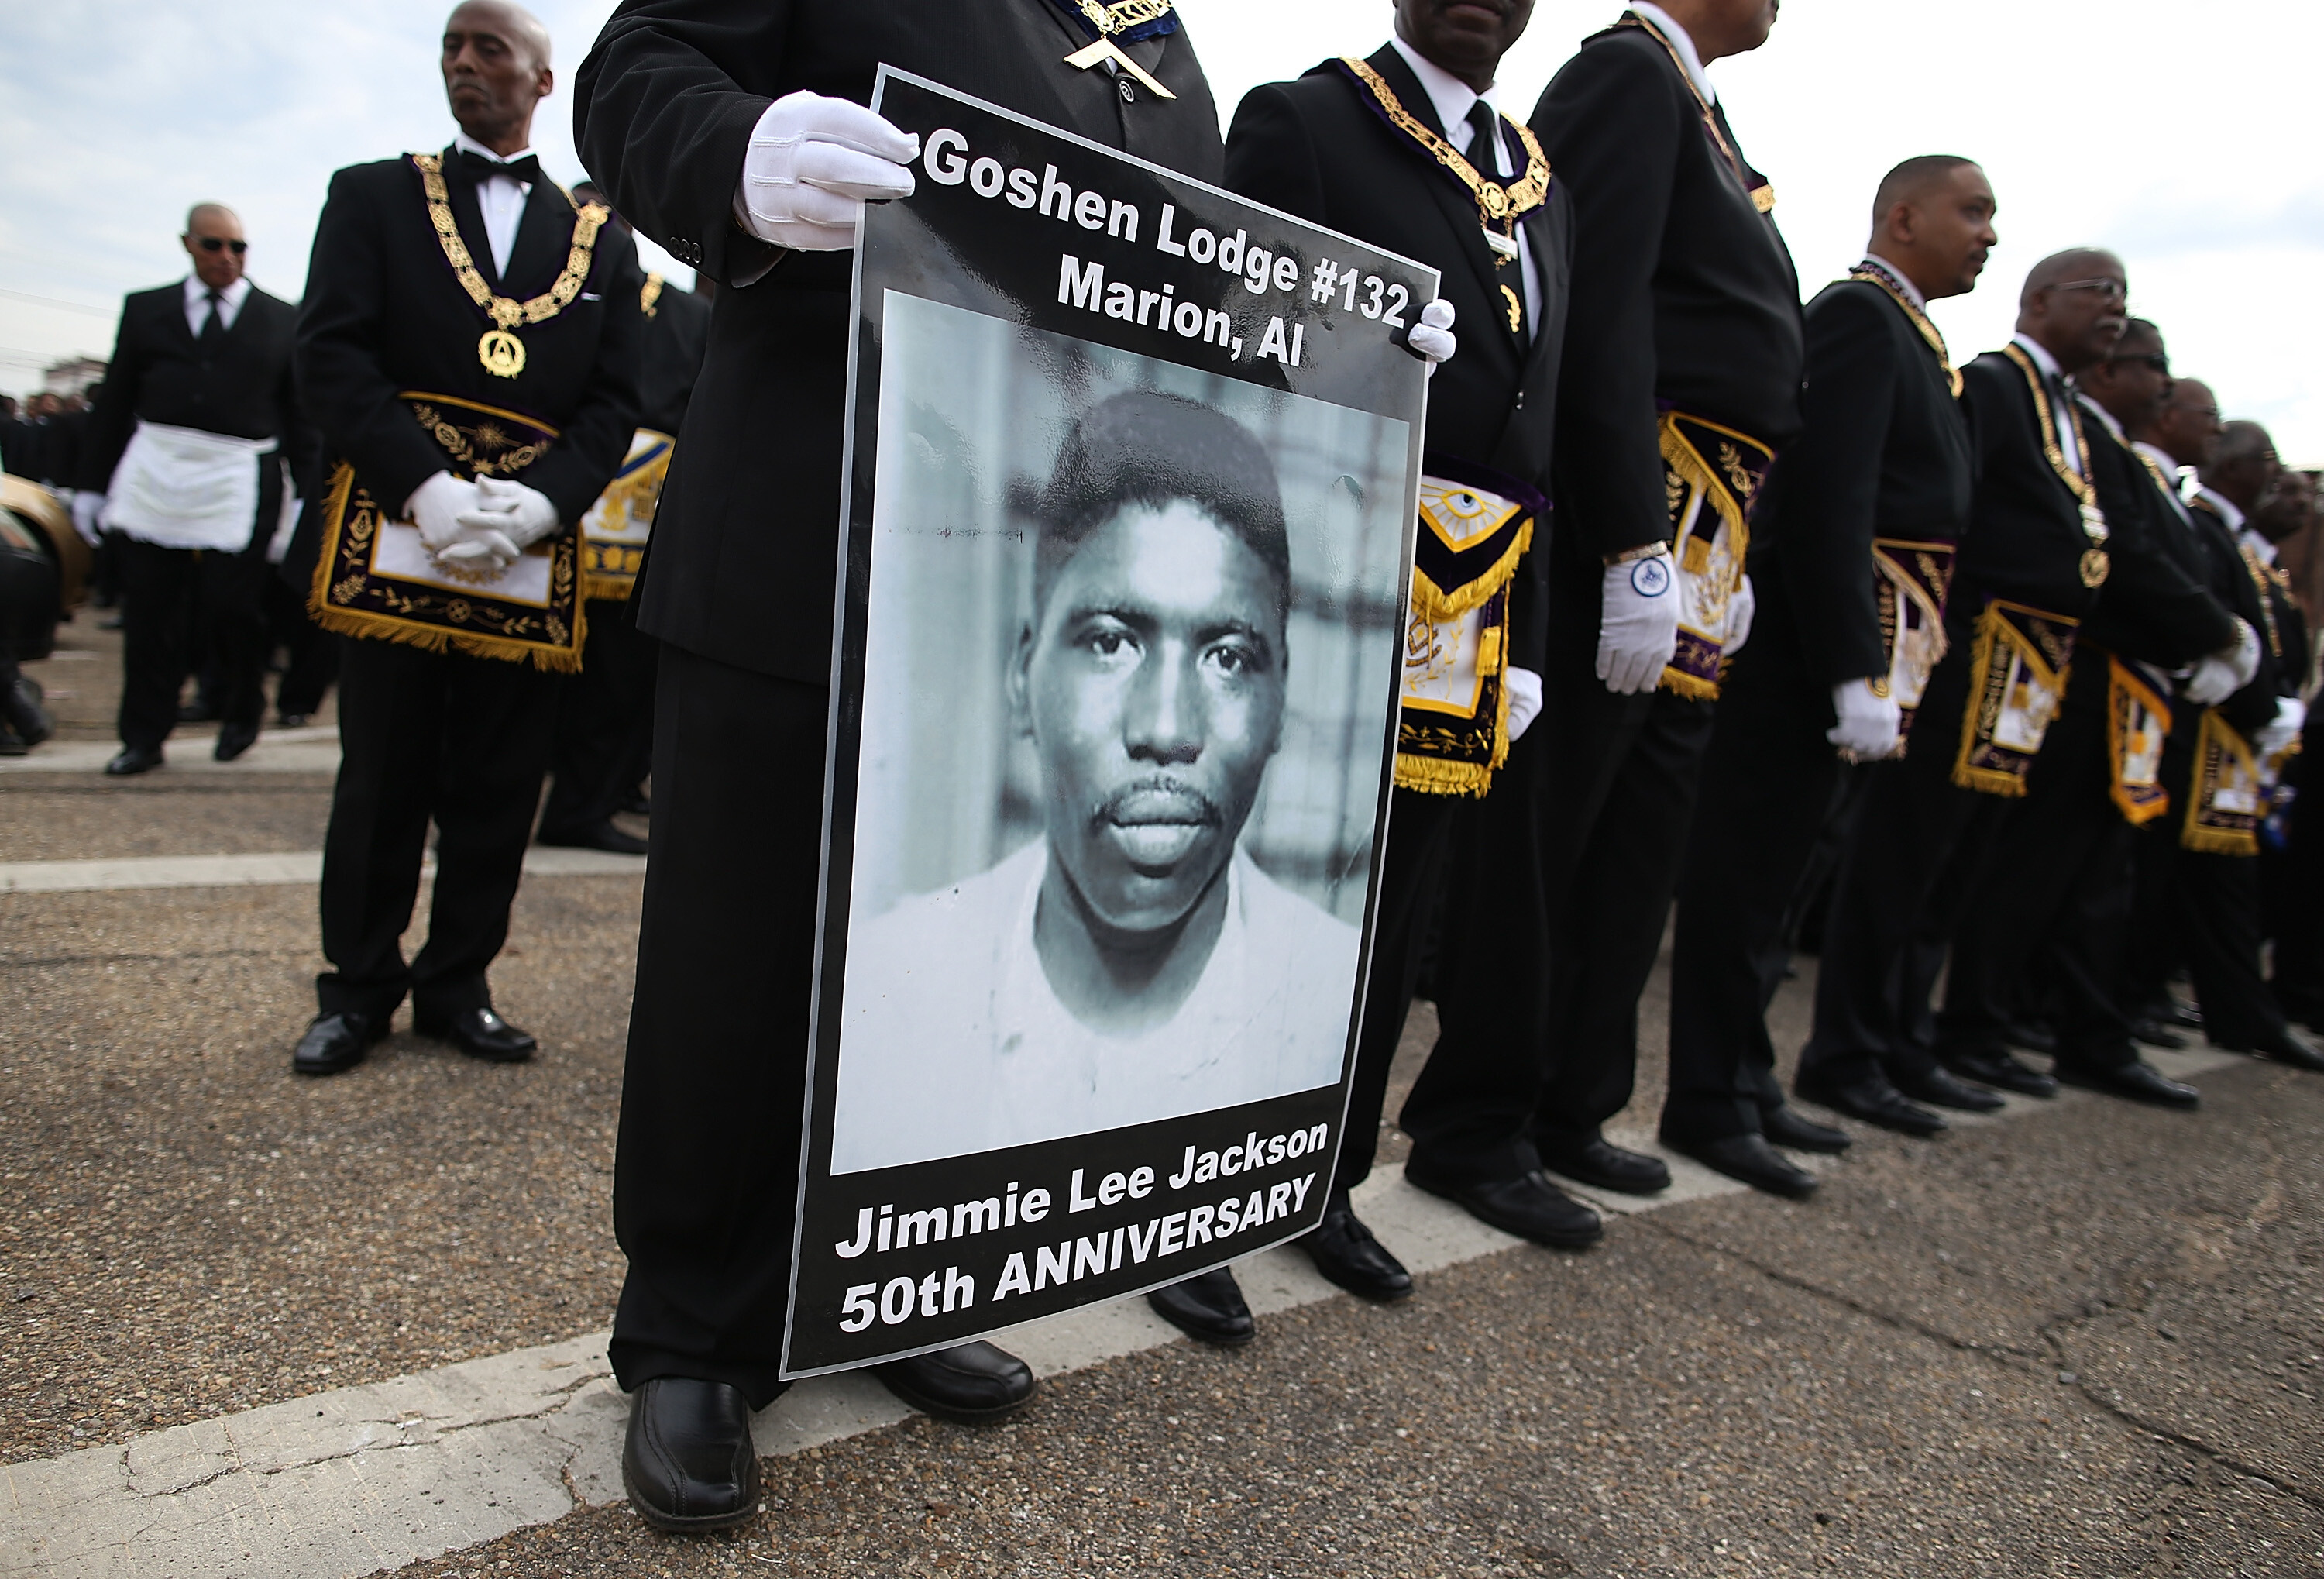 Voting rights march leaders honor the sacrifice made by foot soldiers killed during the civil rights era